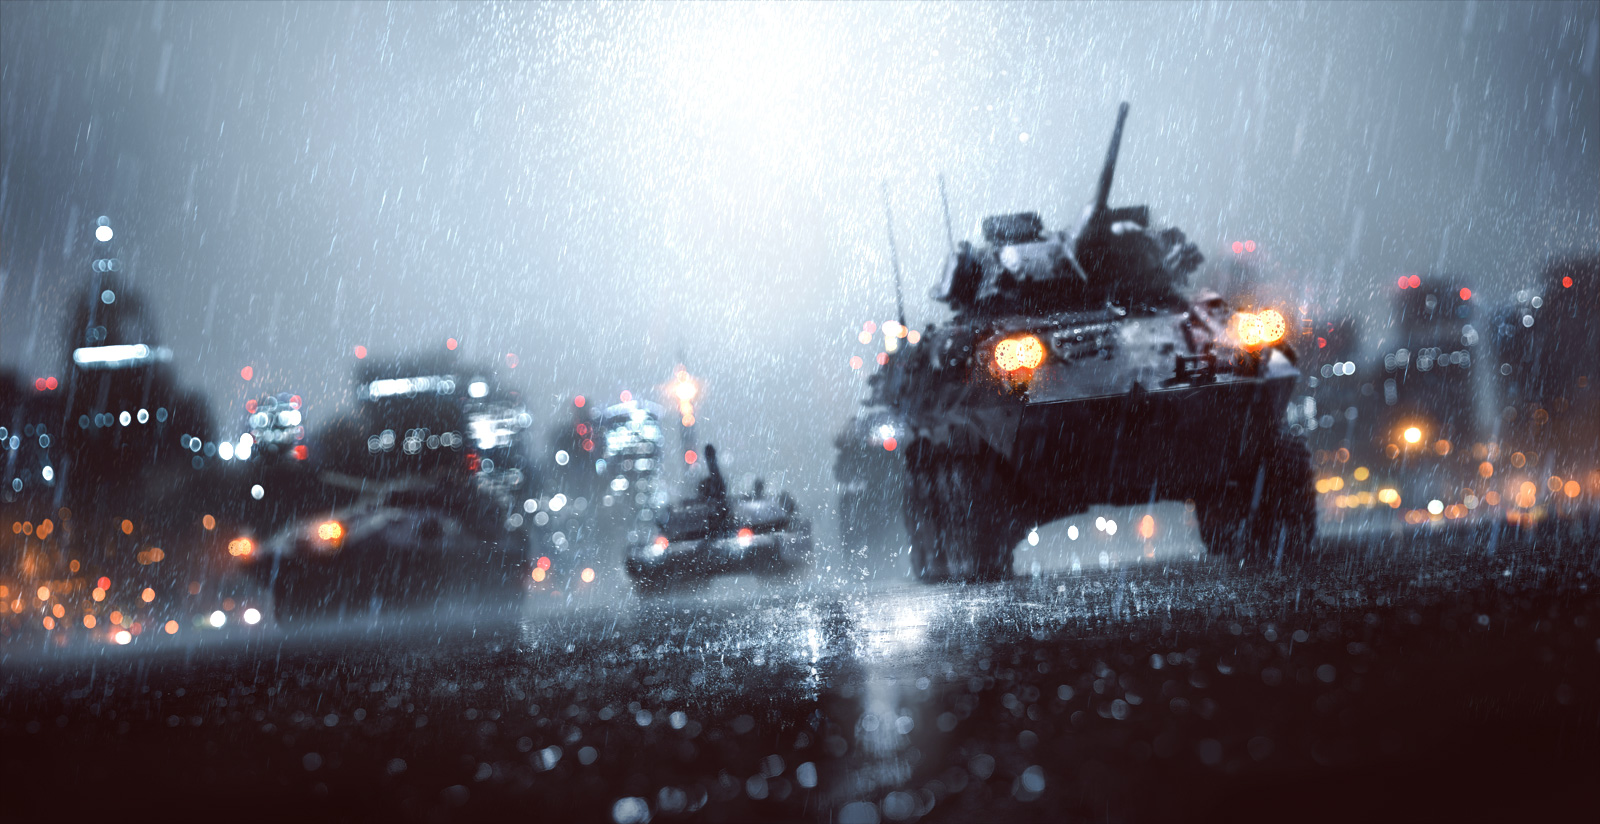 Bf4 battlefield 4 and weather taw the art of warfare - Bf4 wallpaper ...